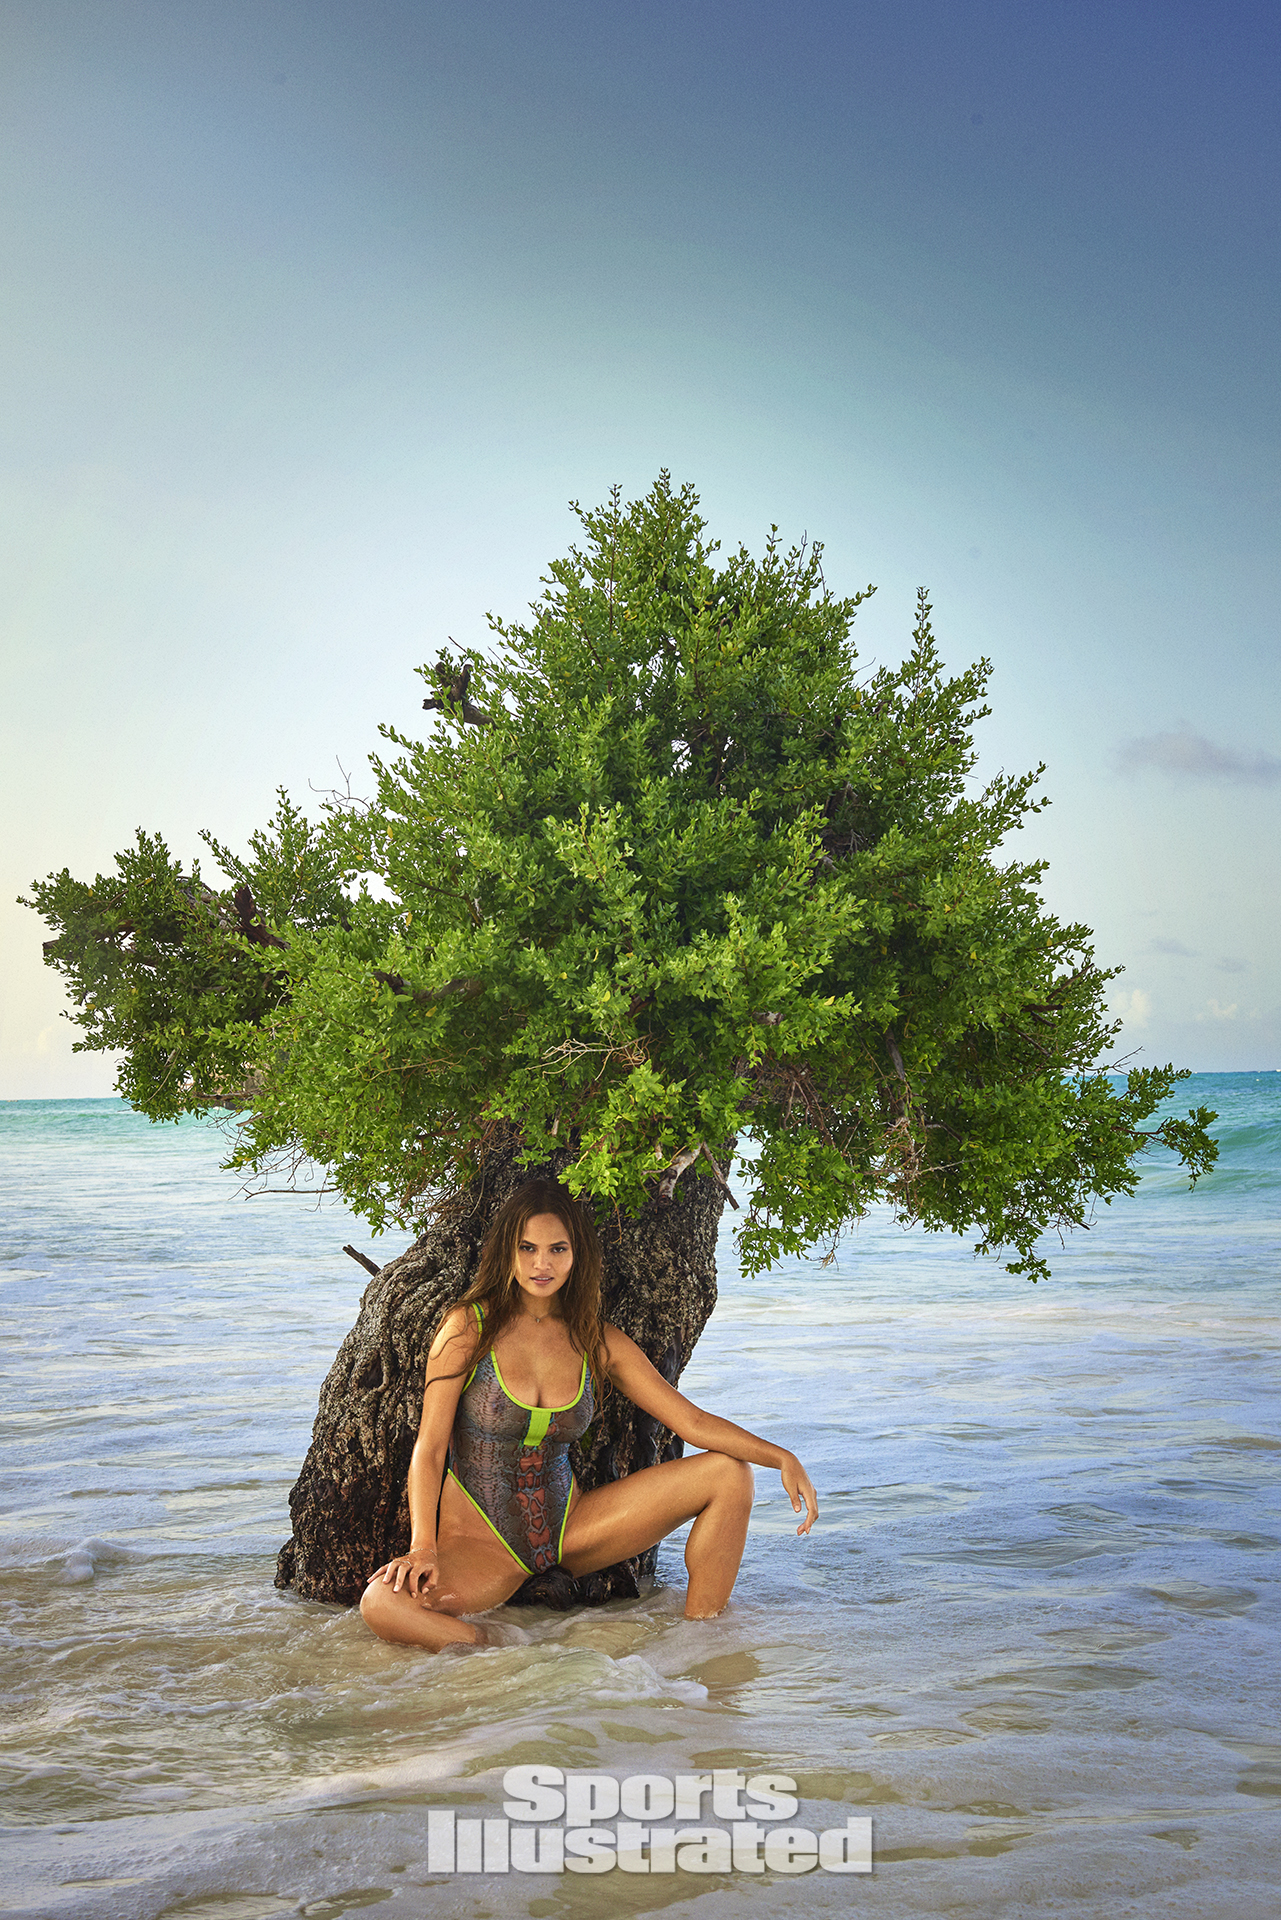 Chrissy Teigen was photographed by Ruven Afanador in Zanzibar. Swimsuit by Haus Of PinkLemonaid.